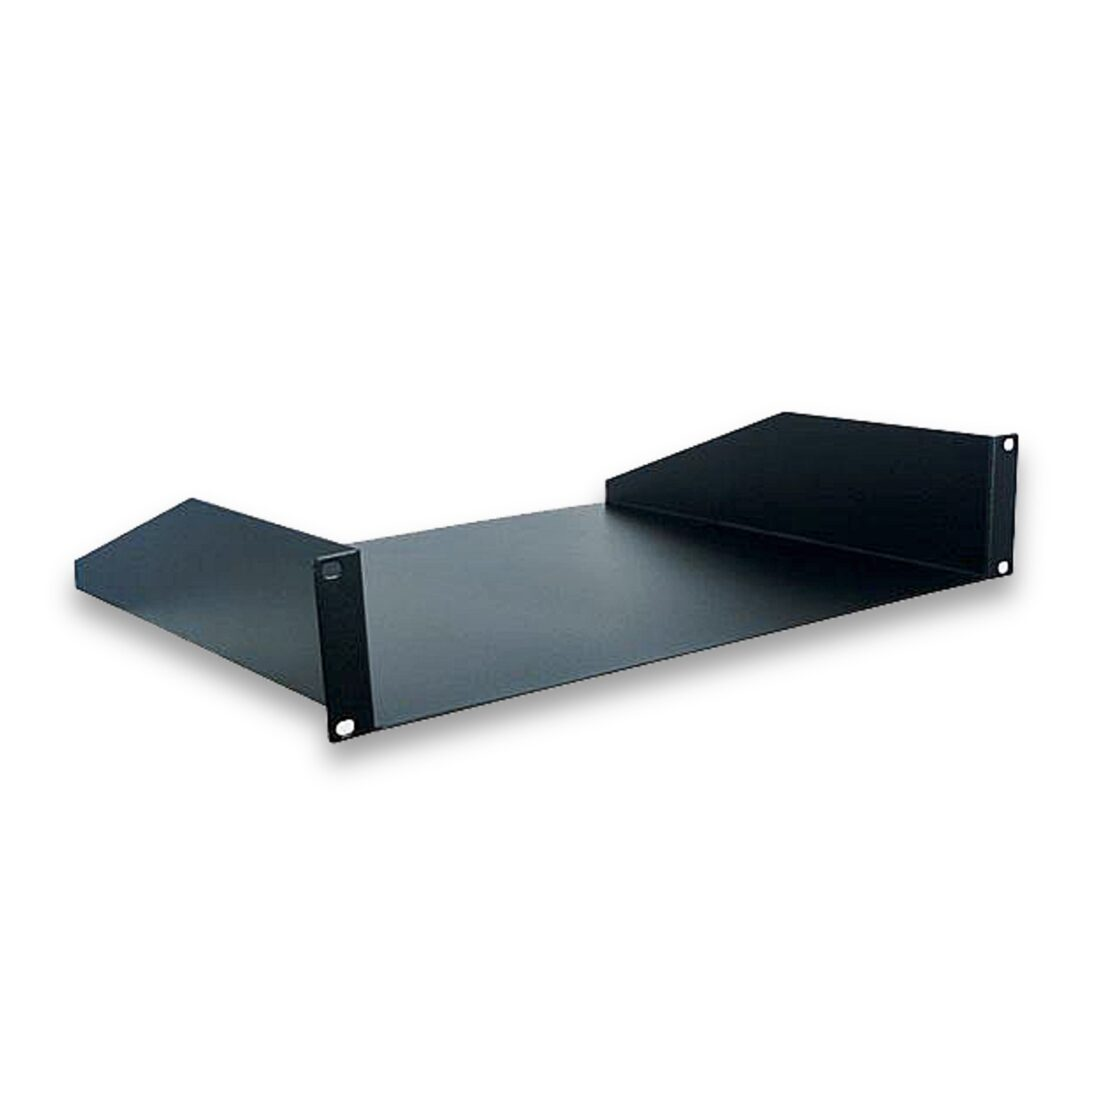 2U steel rack shelf